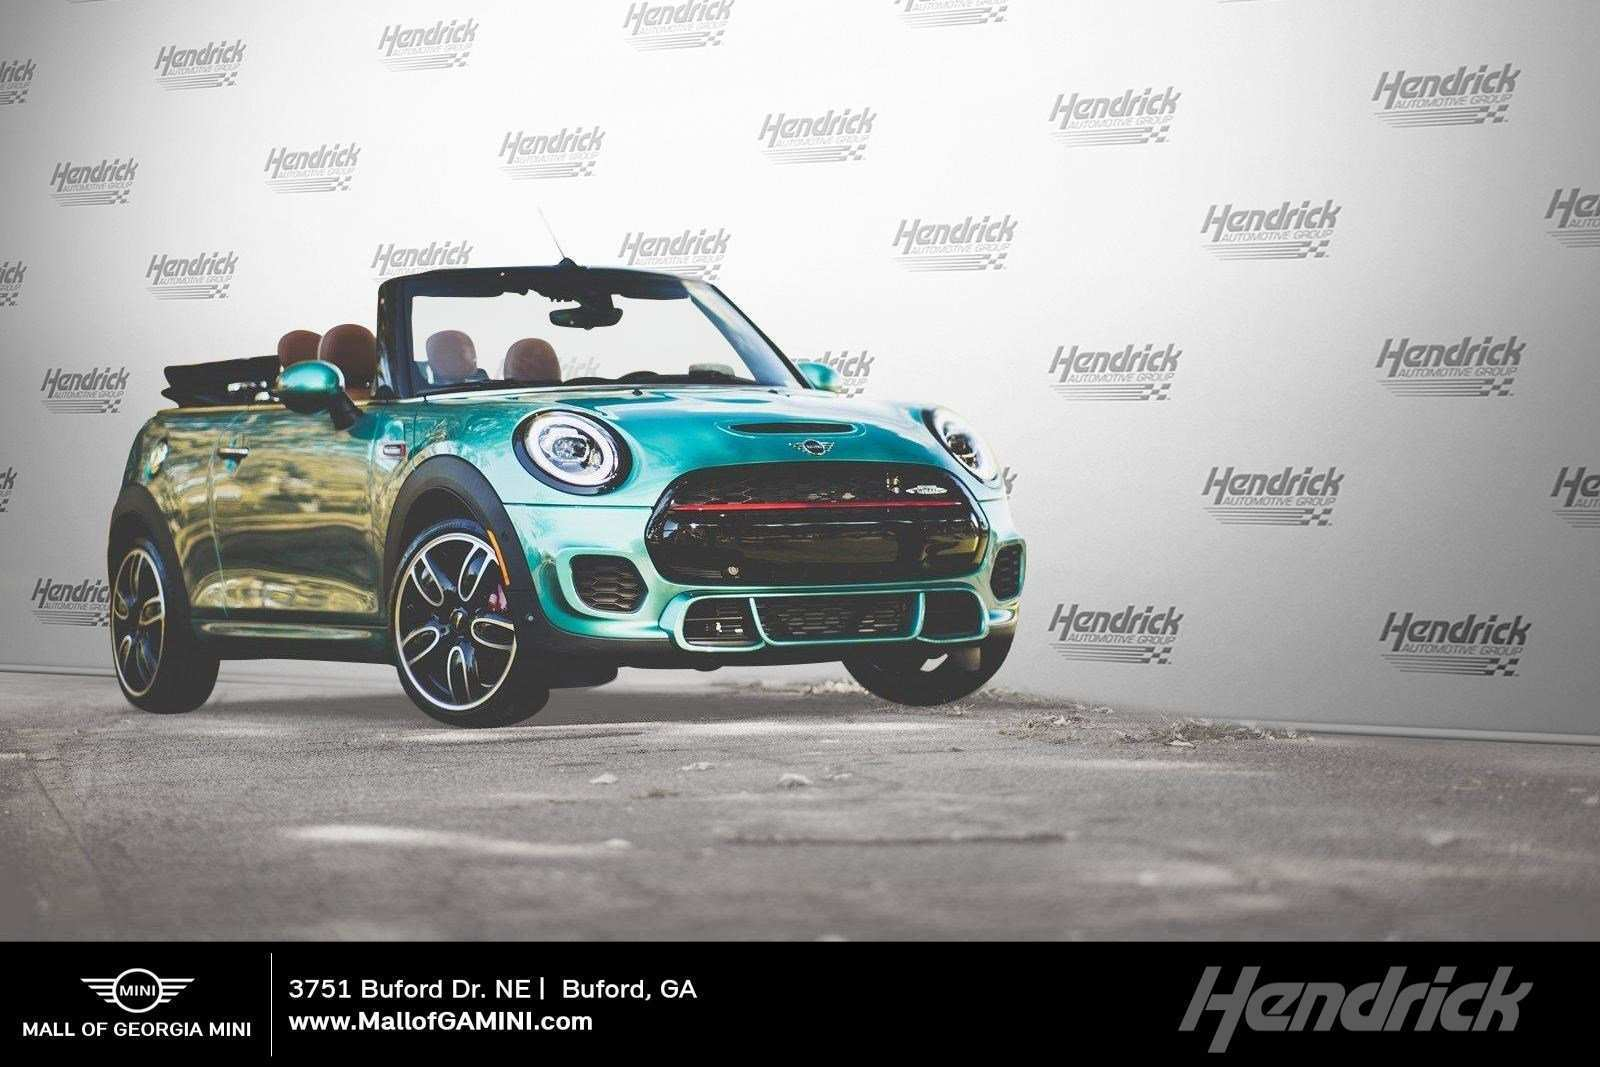 44 Concept of 2019 Mini John Cooper Works Convertible Speed Test for 2019 Mini John Cooper Works Convertible